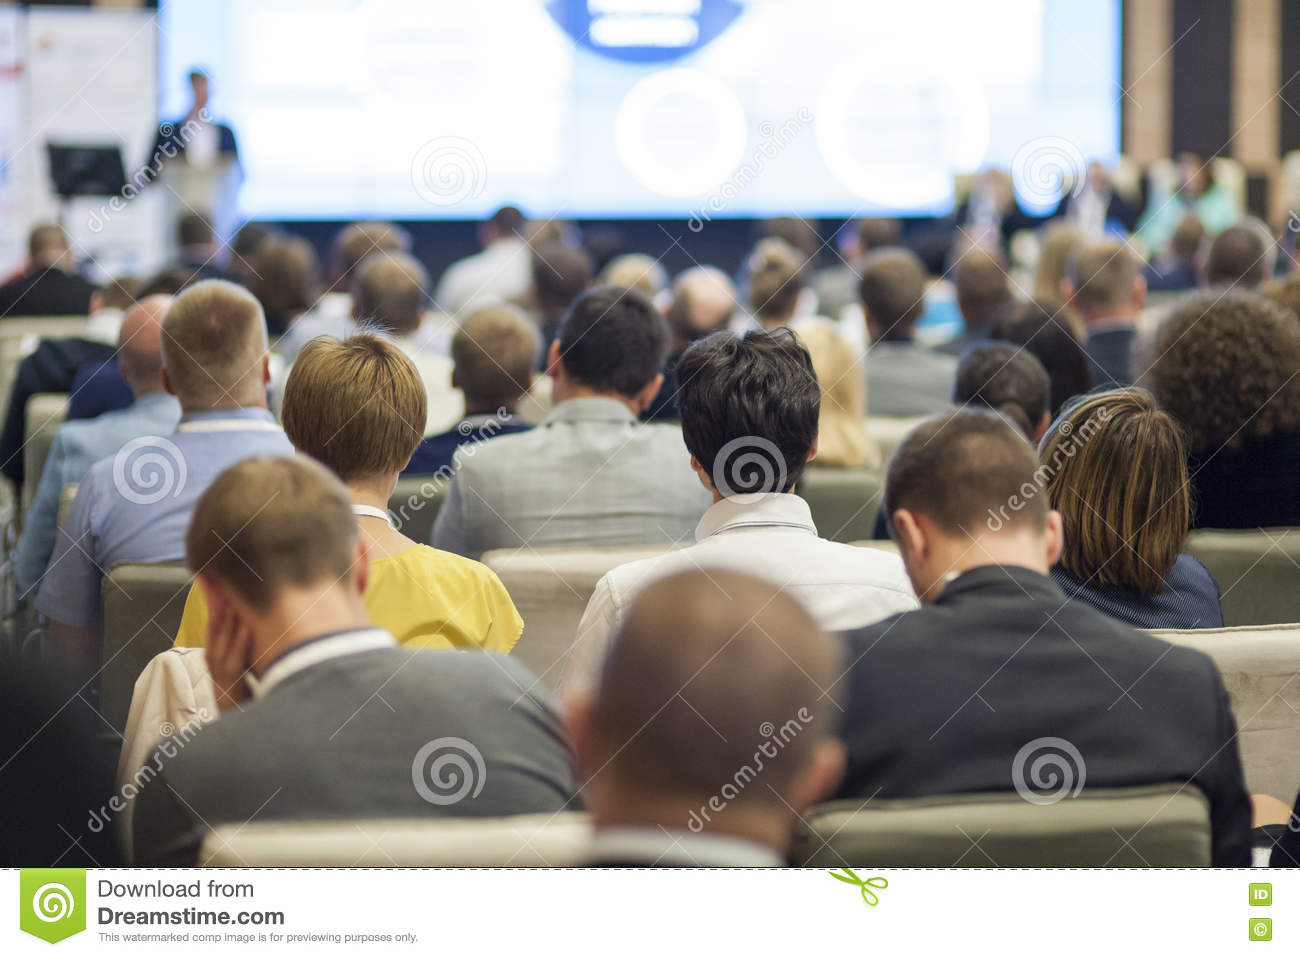 Crowd Of People Sitting Conference Room